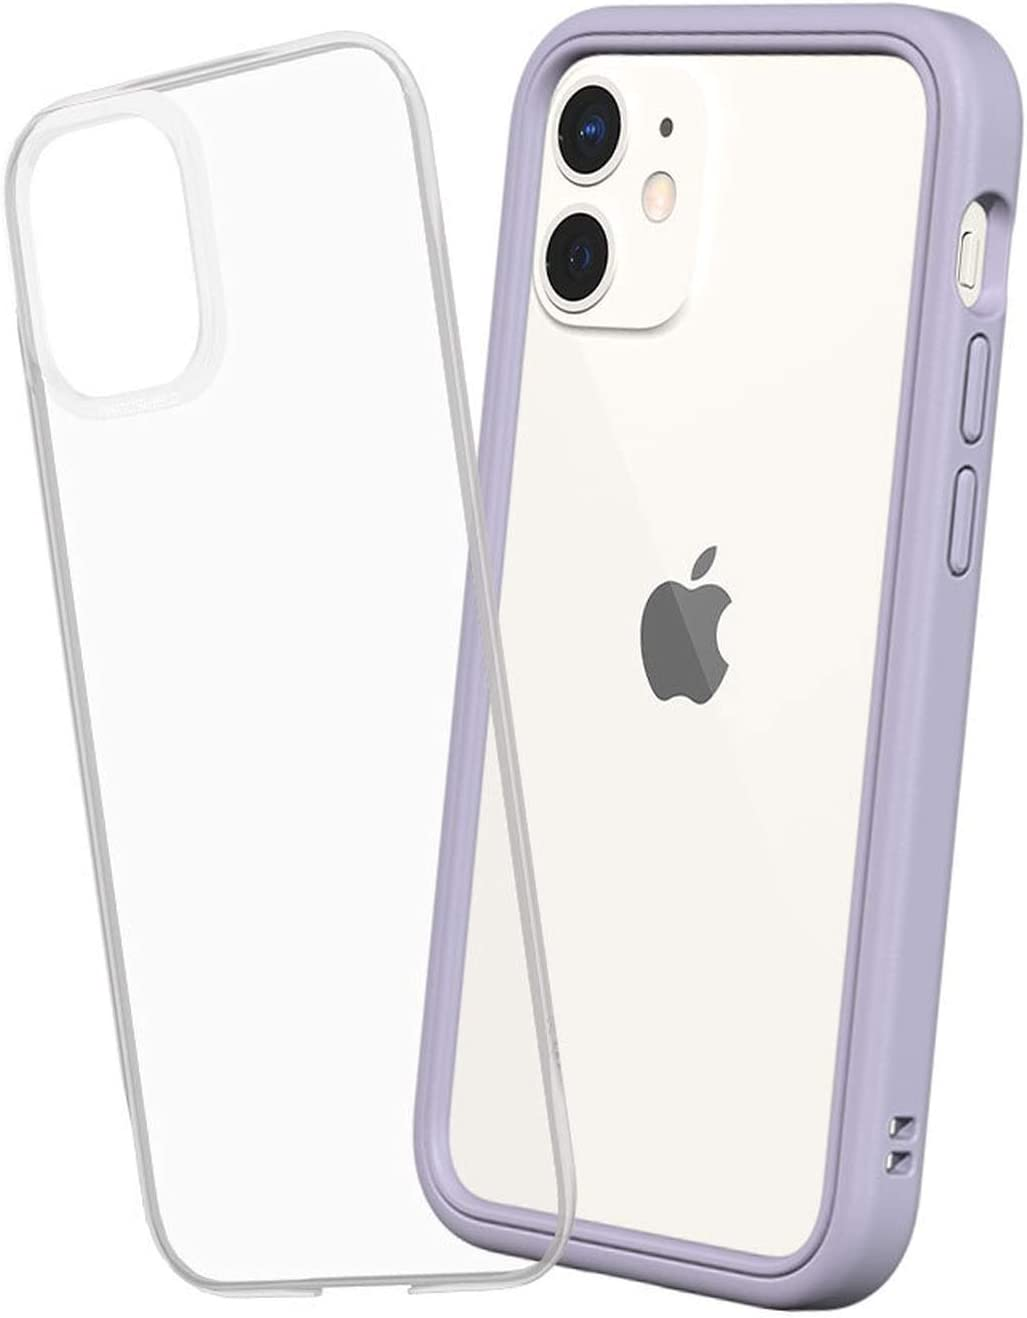 RhinoShield Modular Case Compatible with [iPhone 12 Mini] | Mod NX - Customizable Shock Absorbent Heavy Duty Protective Cover - Lavender